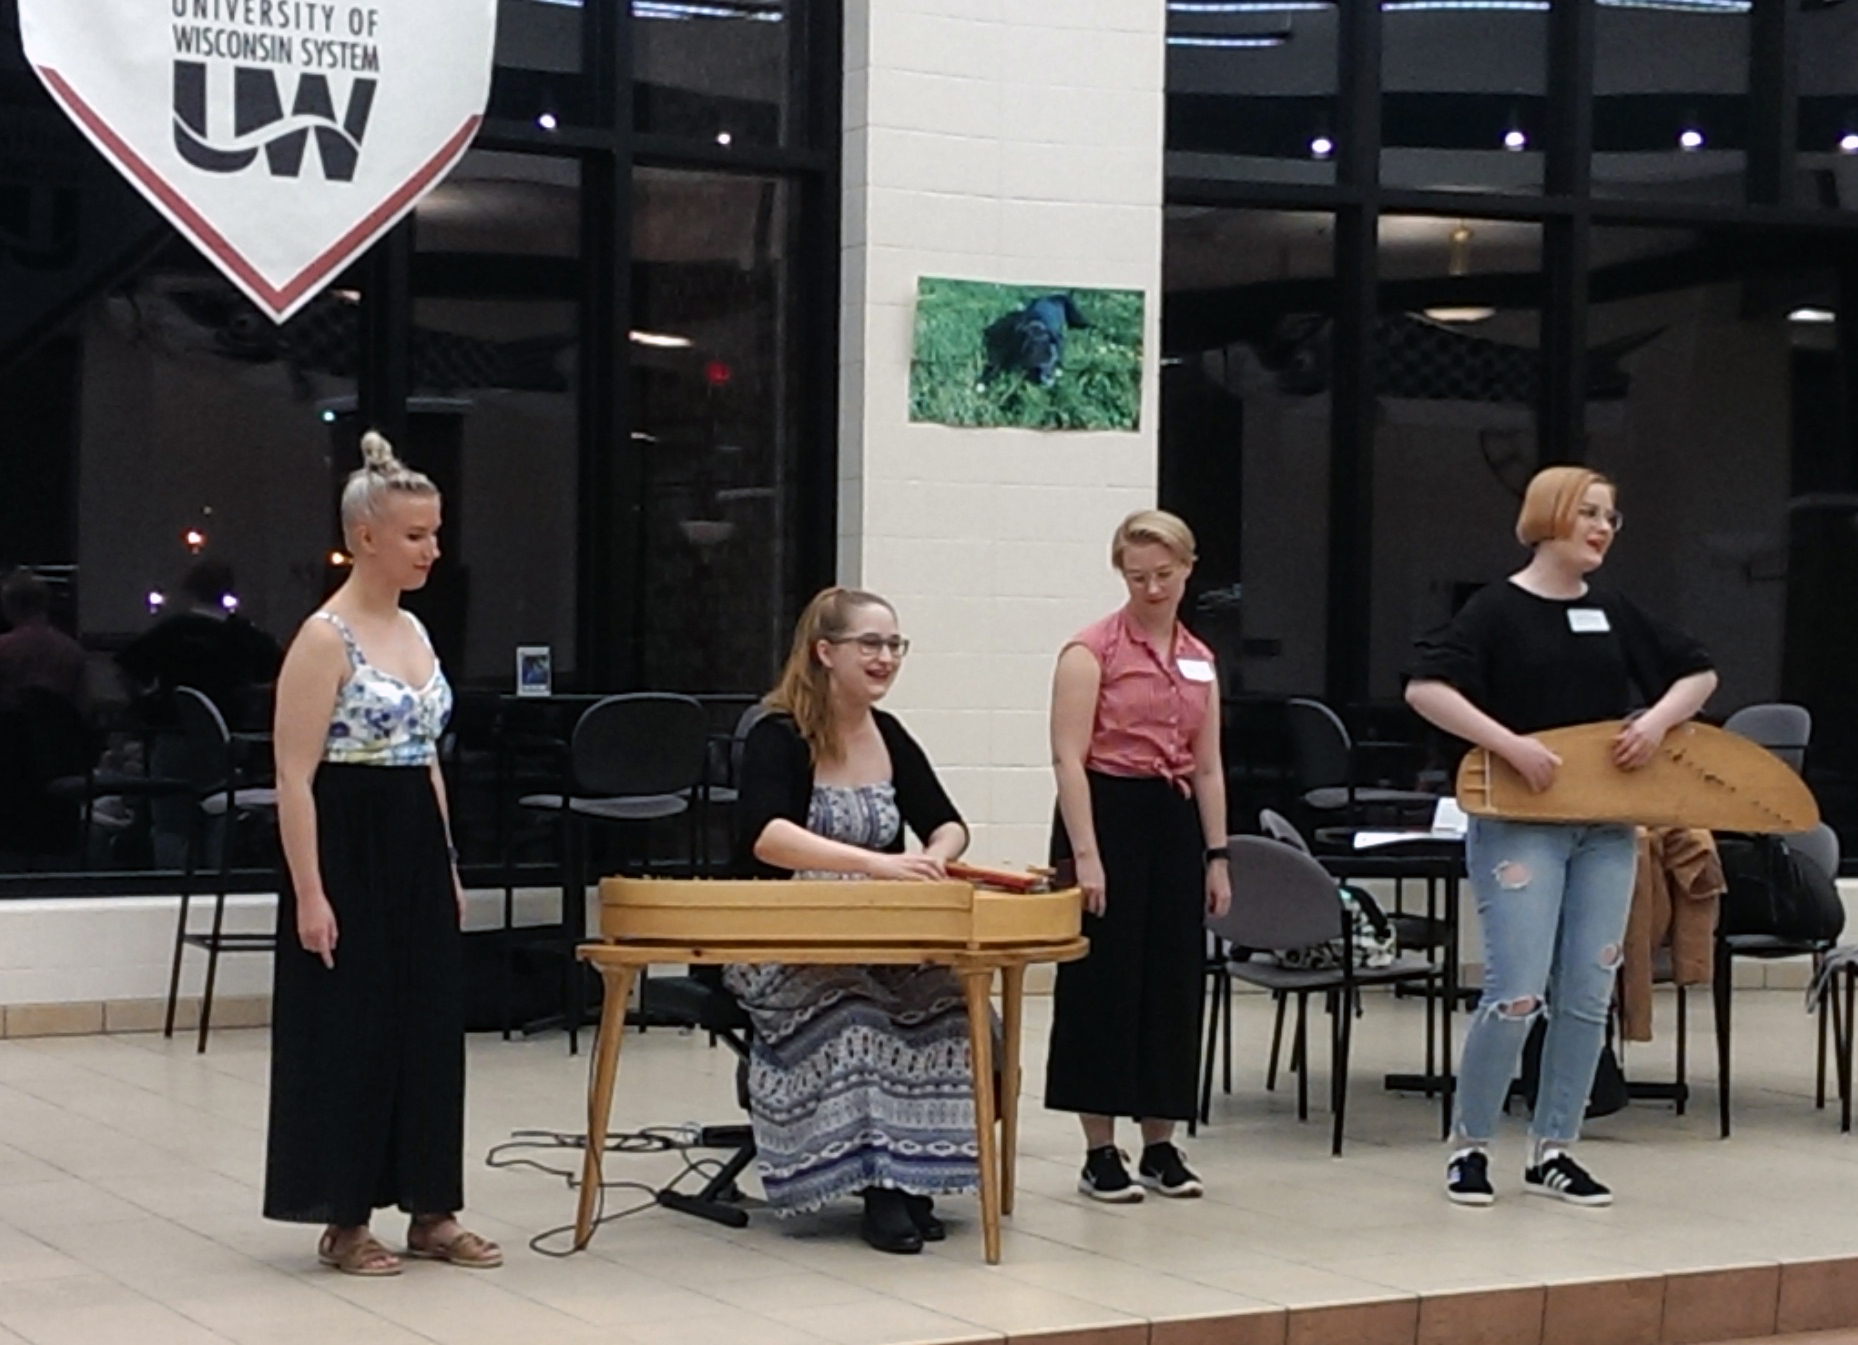 Kardemimmit performs at an evening welcome reception at the University of Wisconsin-Barron County, WI.